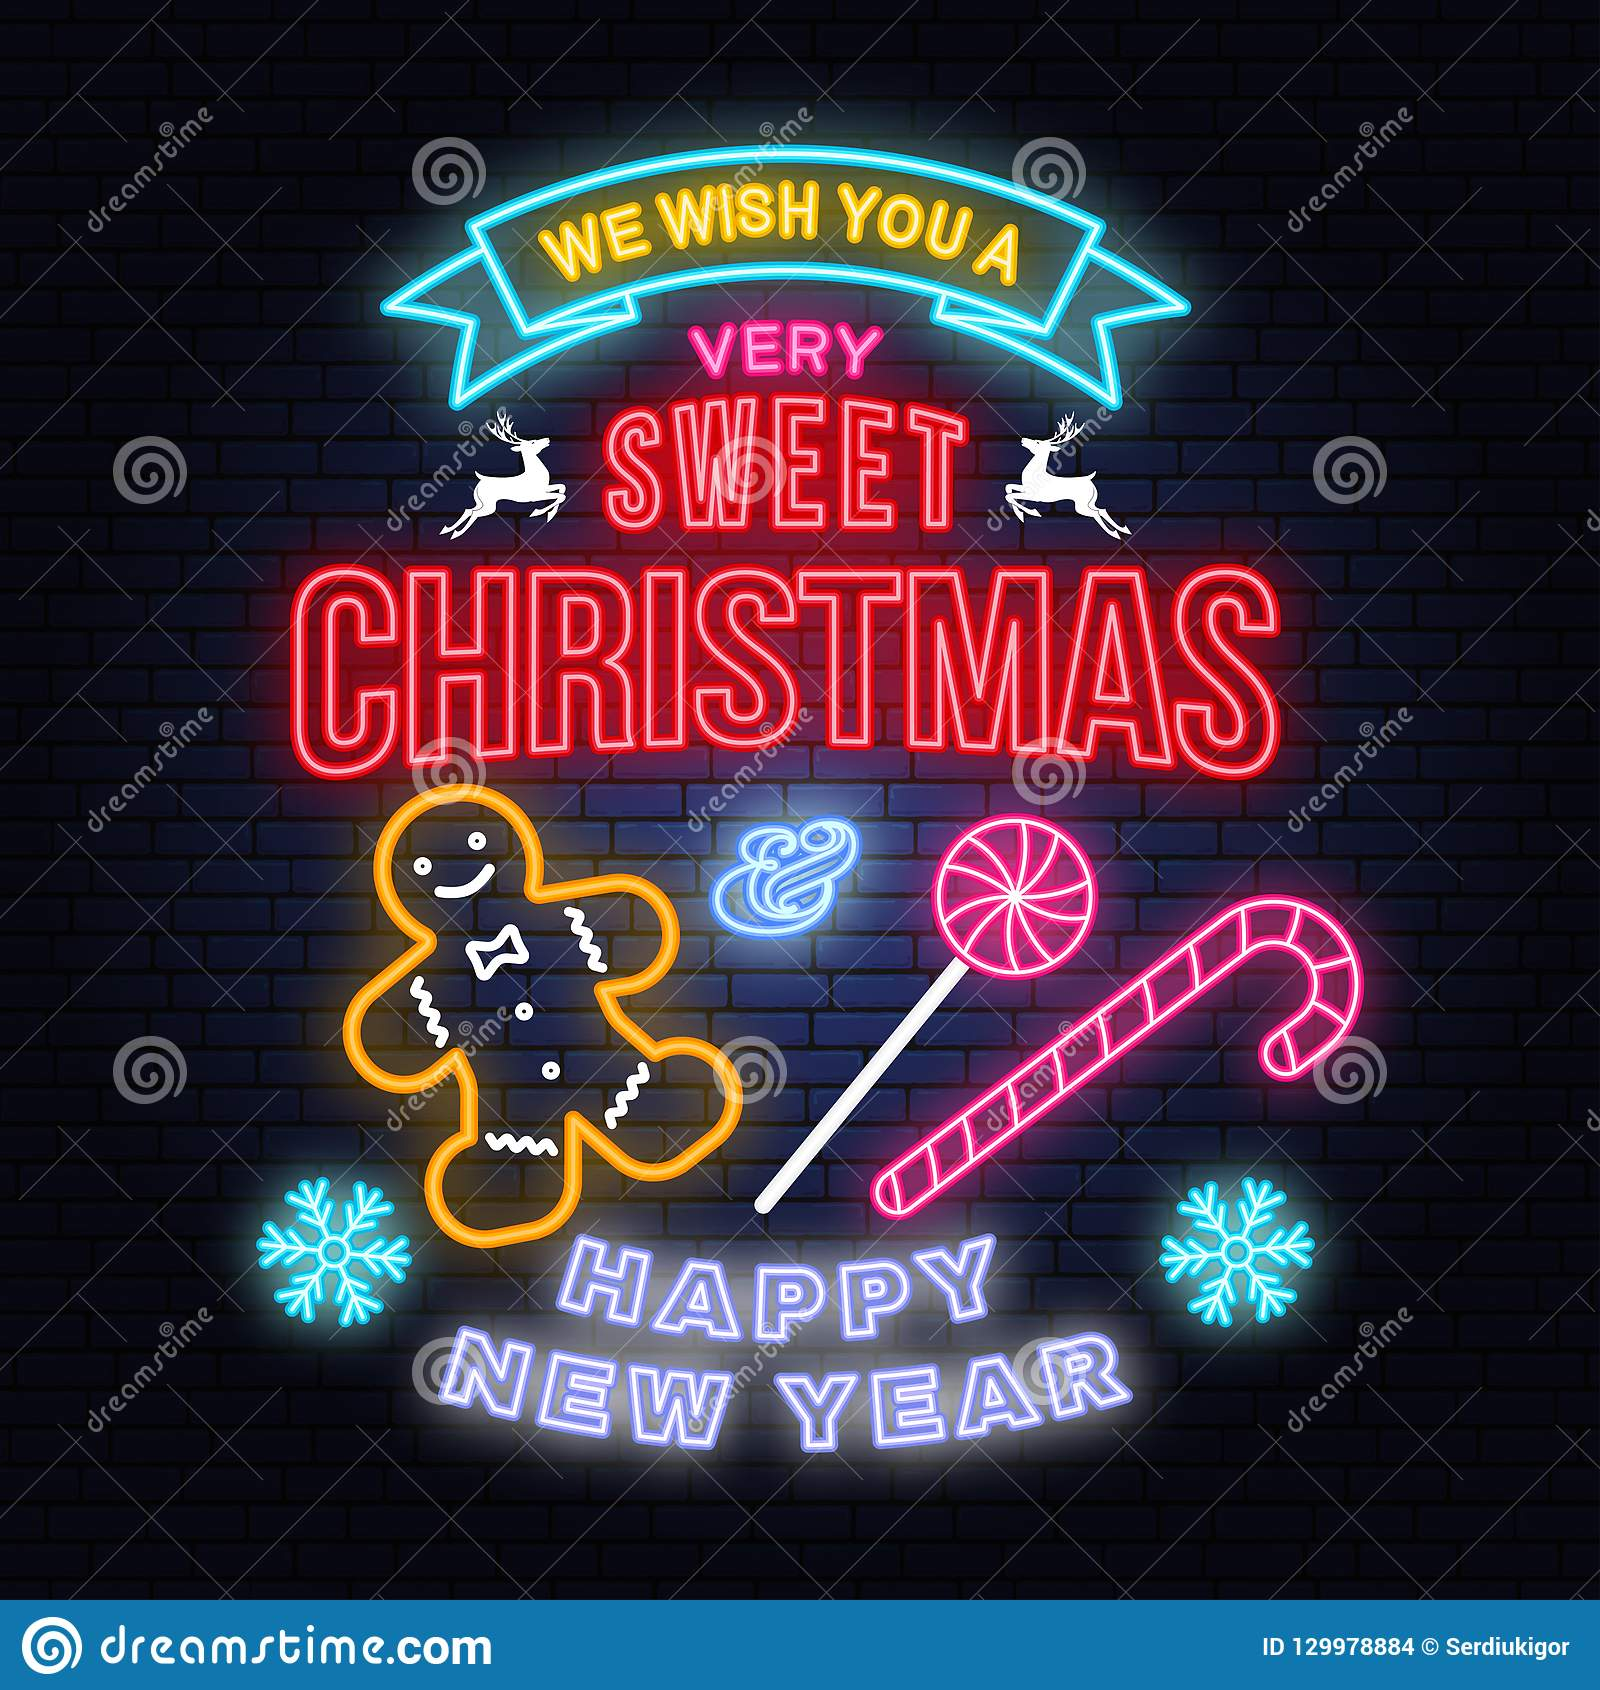 we wish you a very sweet christmas and happy new year neon sign with snowflakes